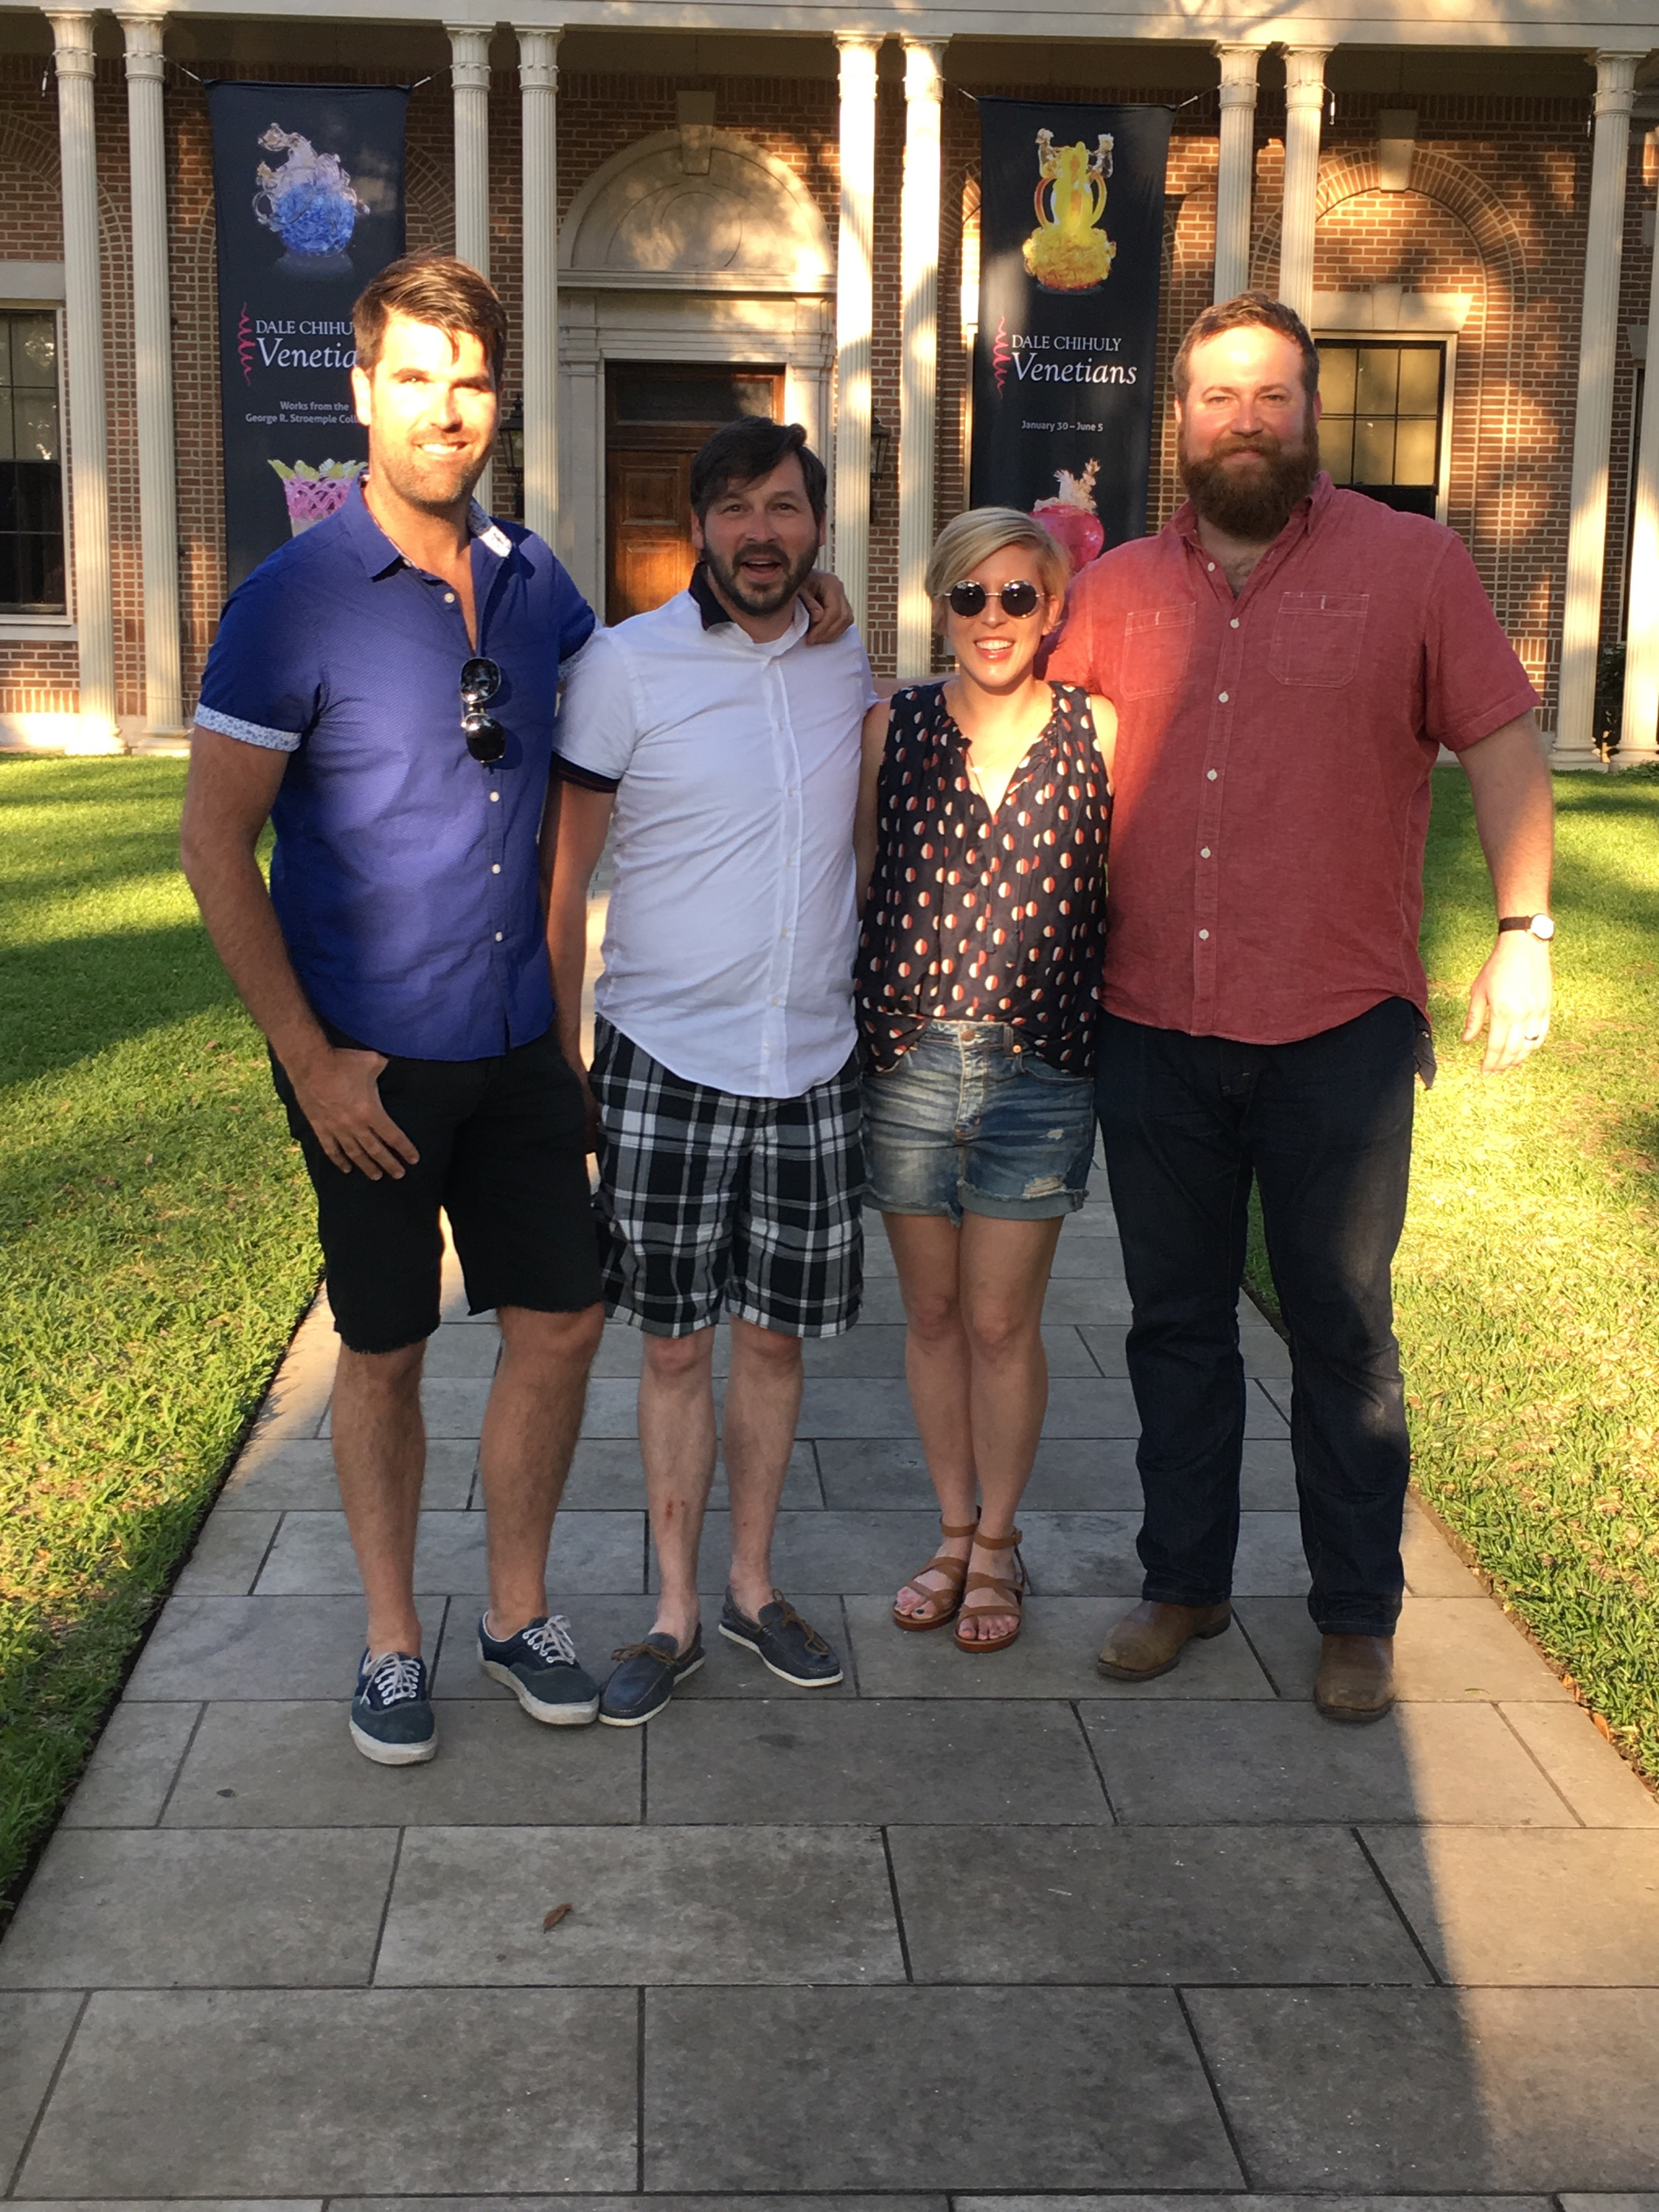 ... headed back to our house to meet up with Brian Patrick Flynn, our new  friend and fellow HGTV designer, who was passing through Laurel on his way  from ...